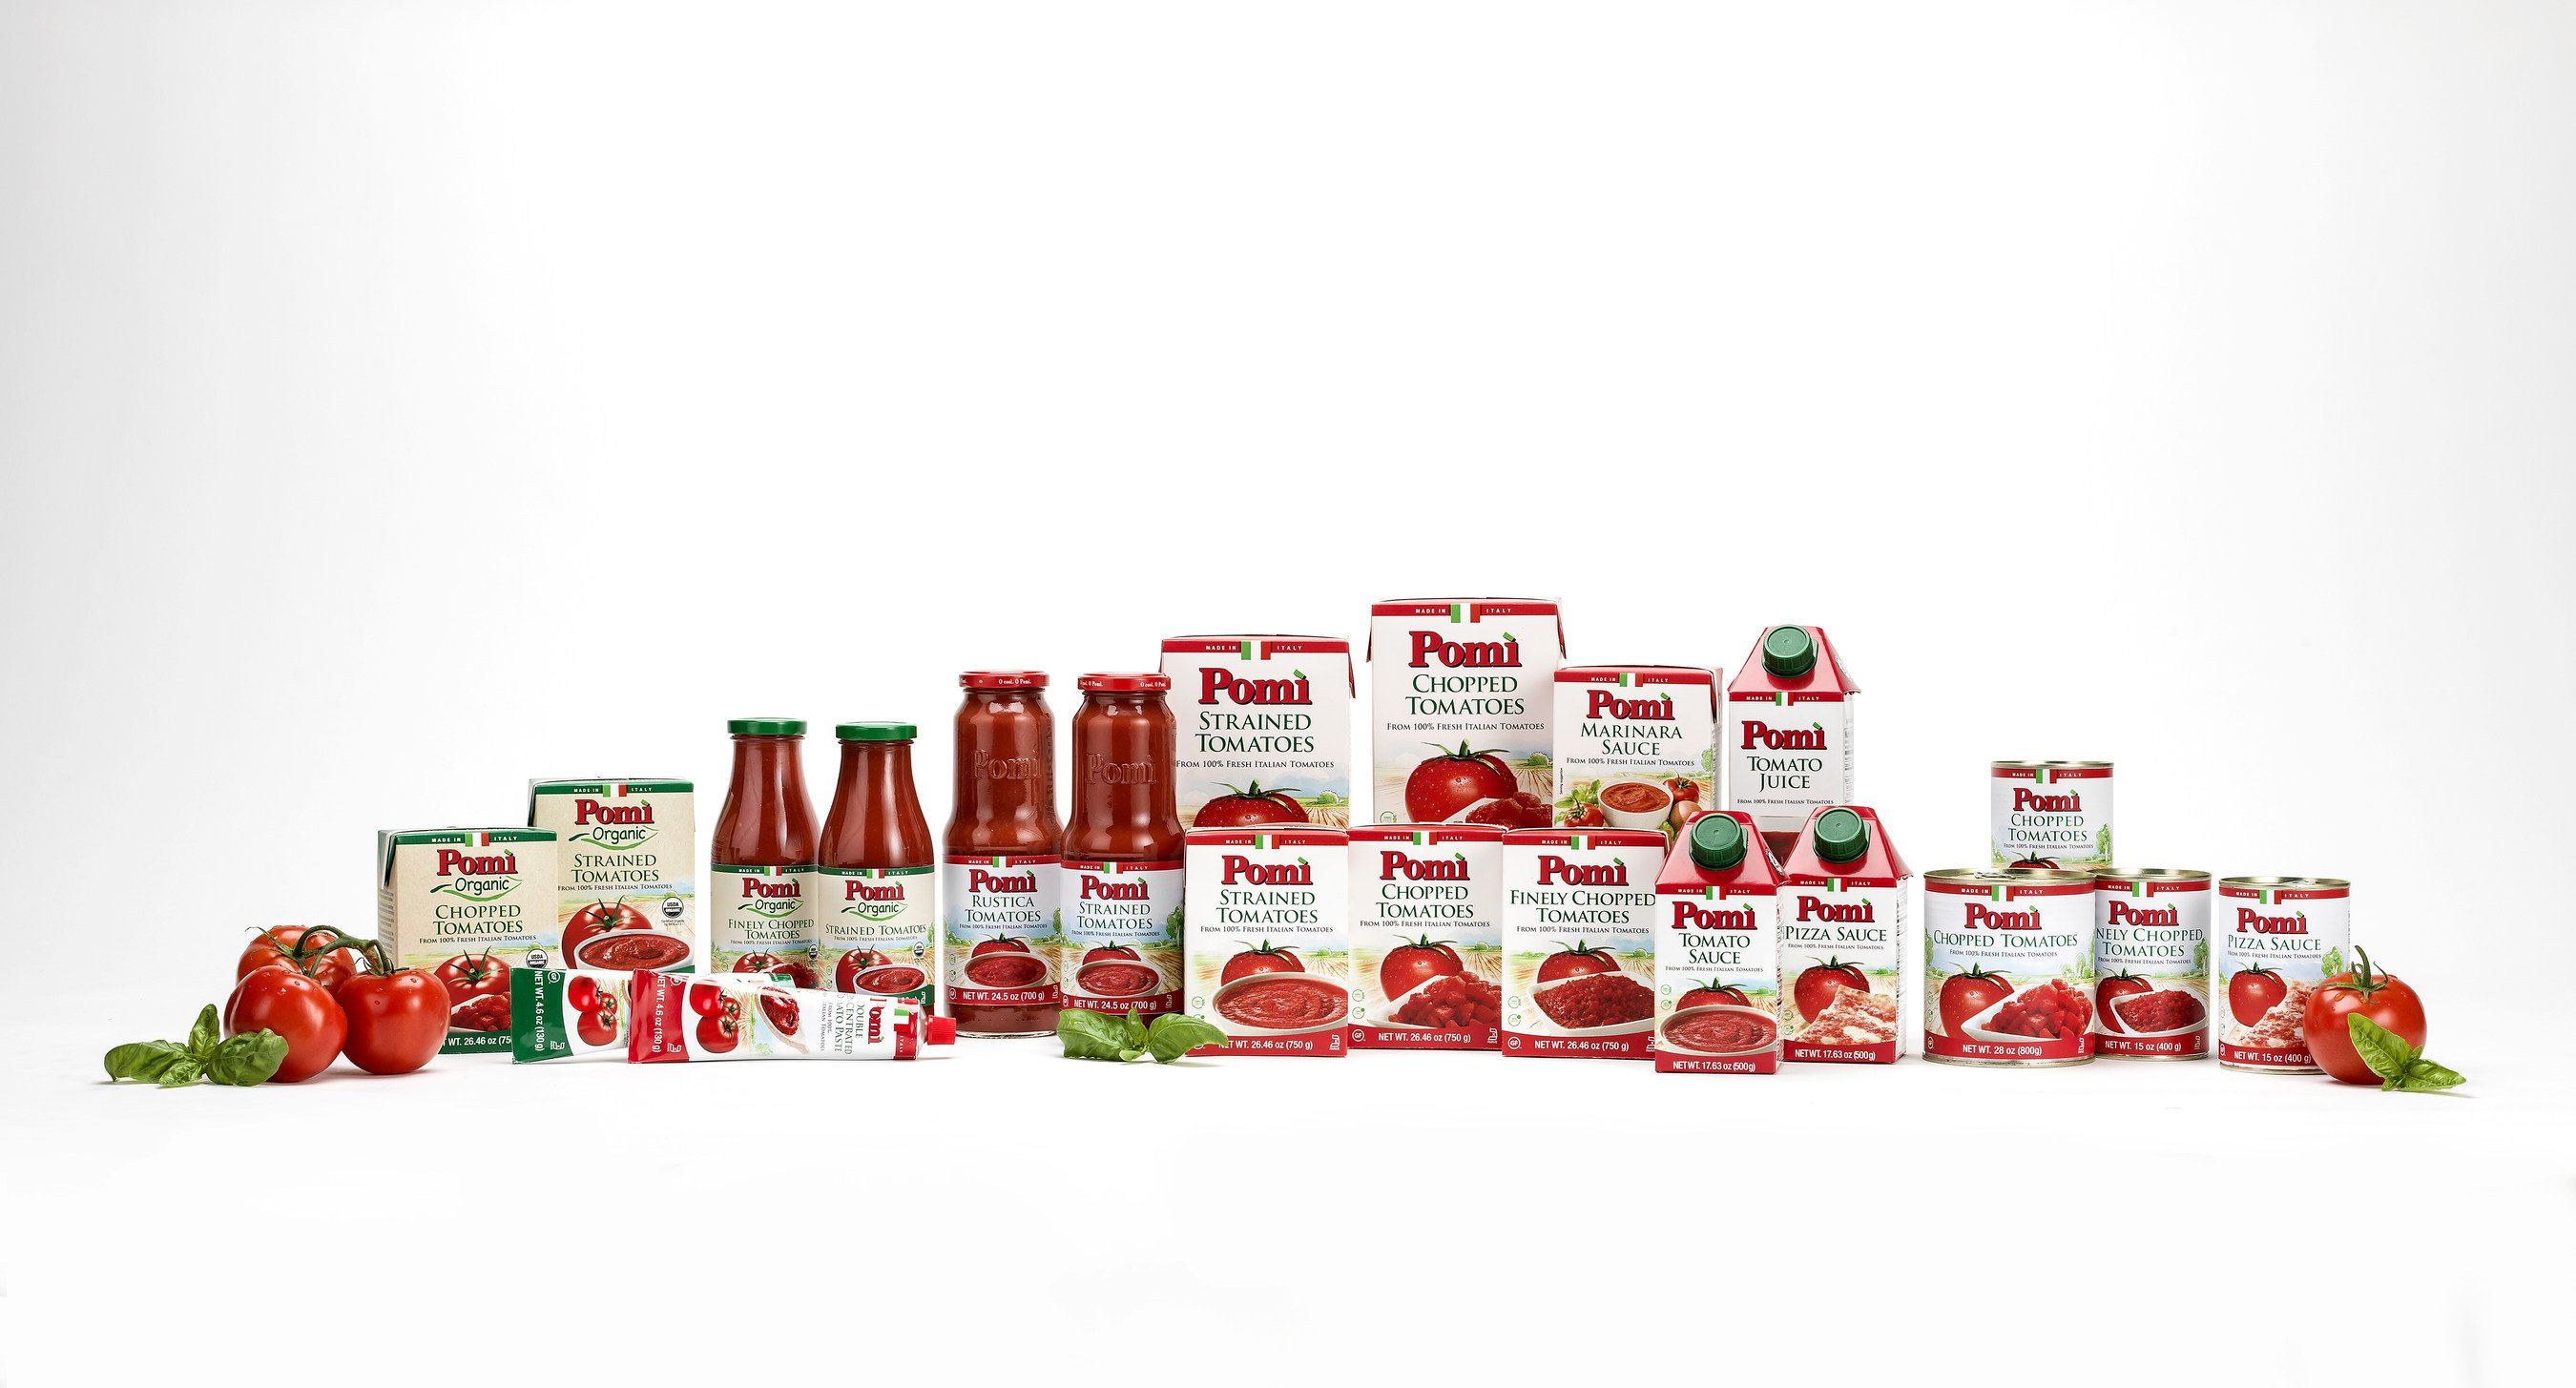 Why we rate Pomi tomato products